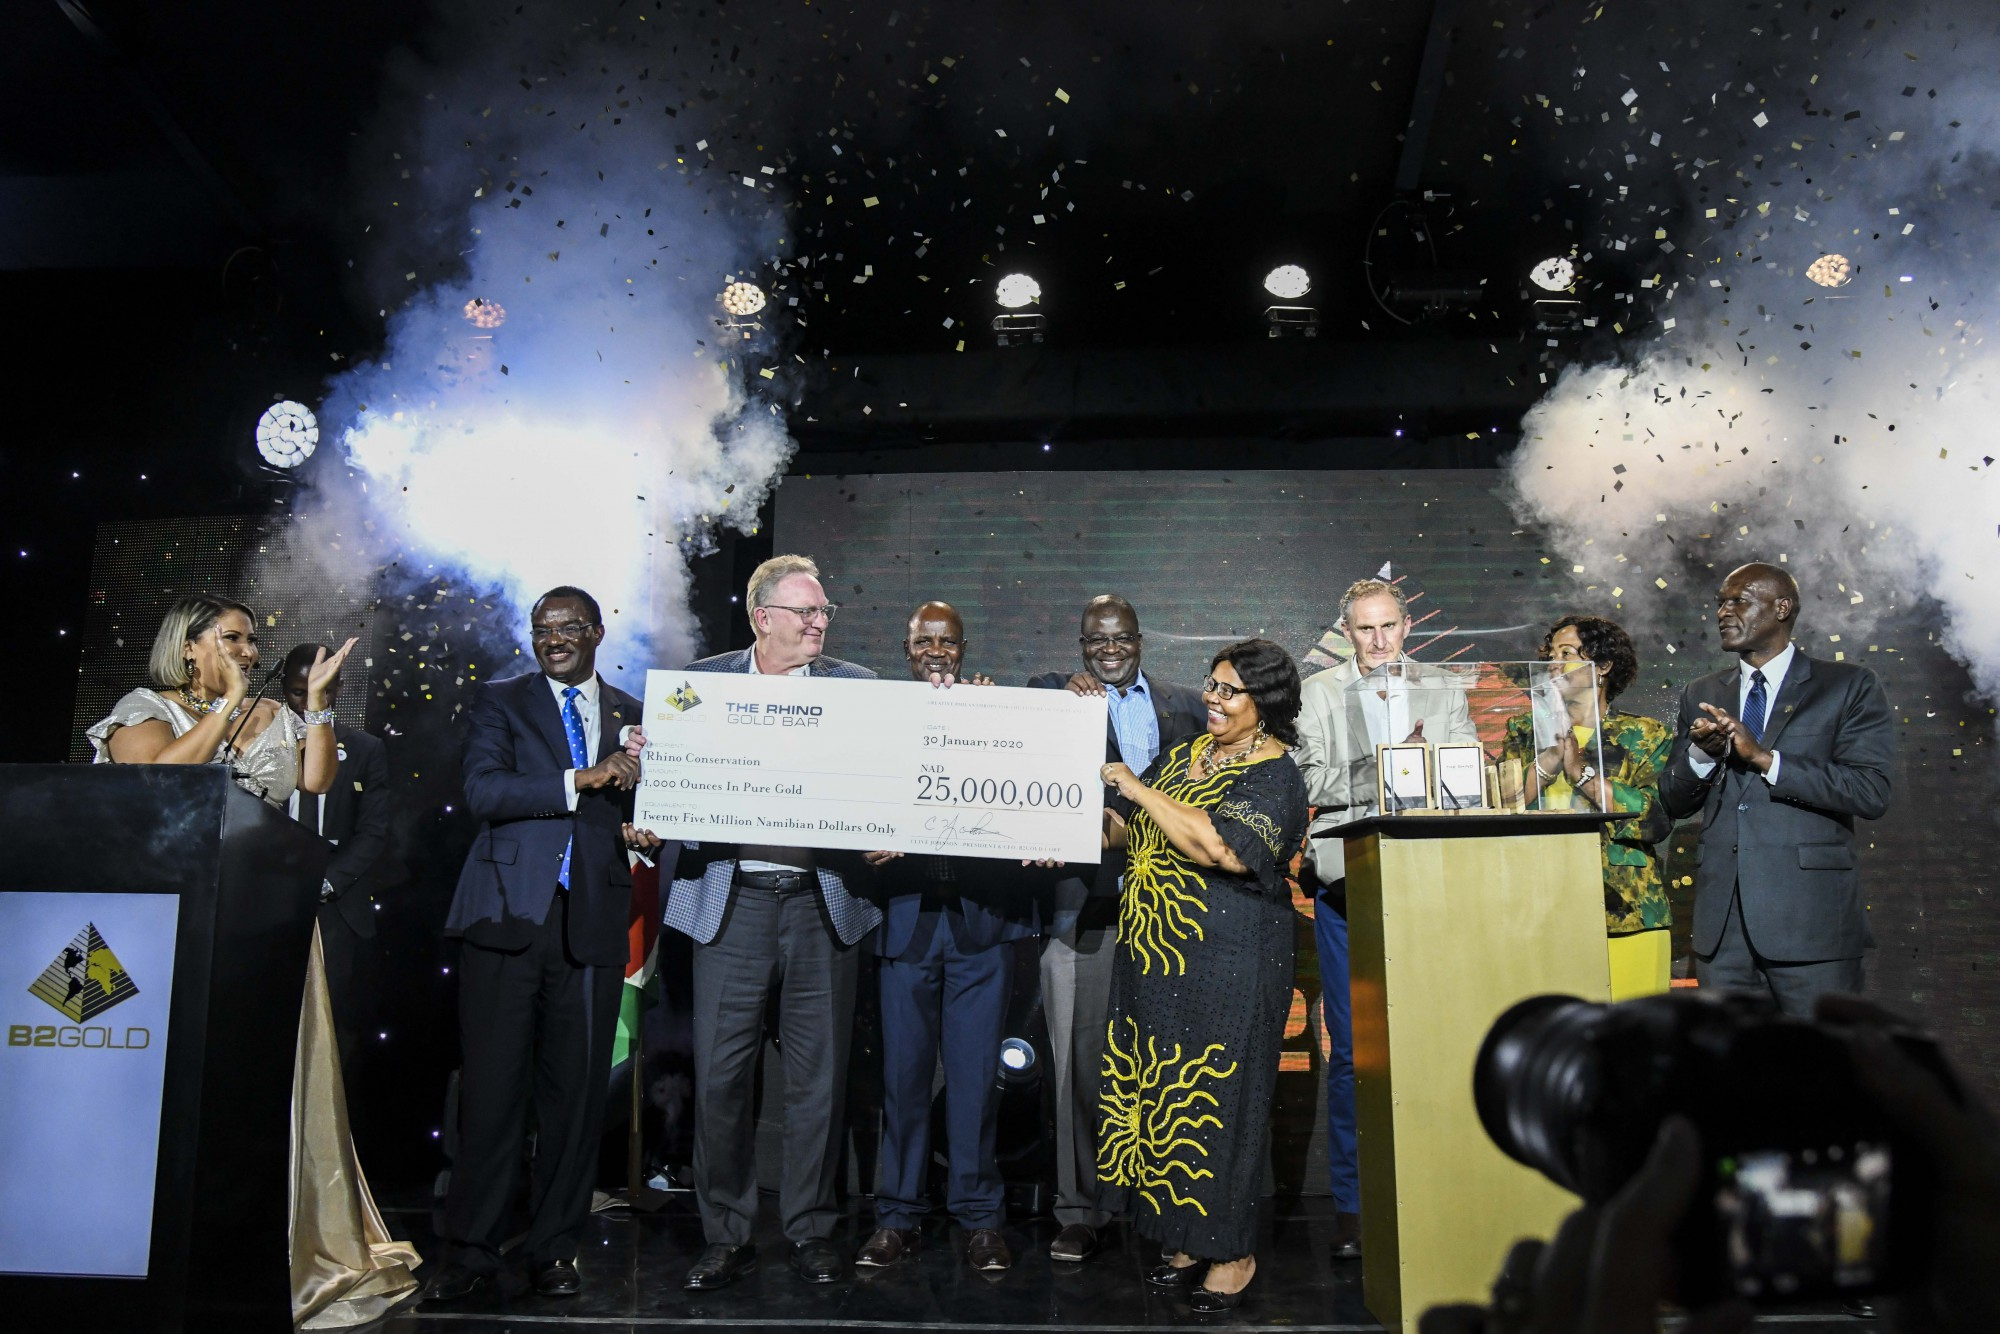 Clive Johnson (President, CEO & Director, B2Gold Corp.) handing a cheque of NAD $25,000,000 (approx. USD $1,500,000)  to various beneficiaries  From left to right: Dr. Leake Hangala ( Director, B2Gold Namibia Proprietary Limited), Clive Johnson, Simson Uri-Khob (CEO, Save the Rhino Trust), John Kasaona (Executive Director, Integrated Rural Development and Nature Conservation), Honorable Bernadette Jagger (Deputy Minister of Environment and Tourism), Mark Dawe (Country Manager and Managing Director – Namibia, B2Gold Corp.), Inge Zaamwani-Kamwi (Adviser to the President of the Republic of Namibia, Dr Hage Geingob) and Tom Alweendo (Minister of Mines and Energy)